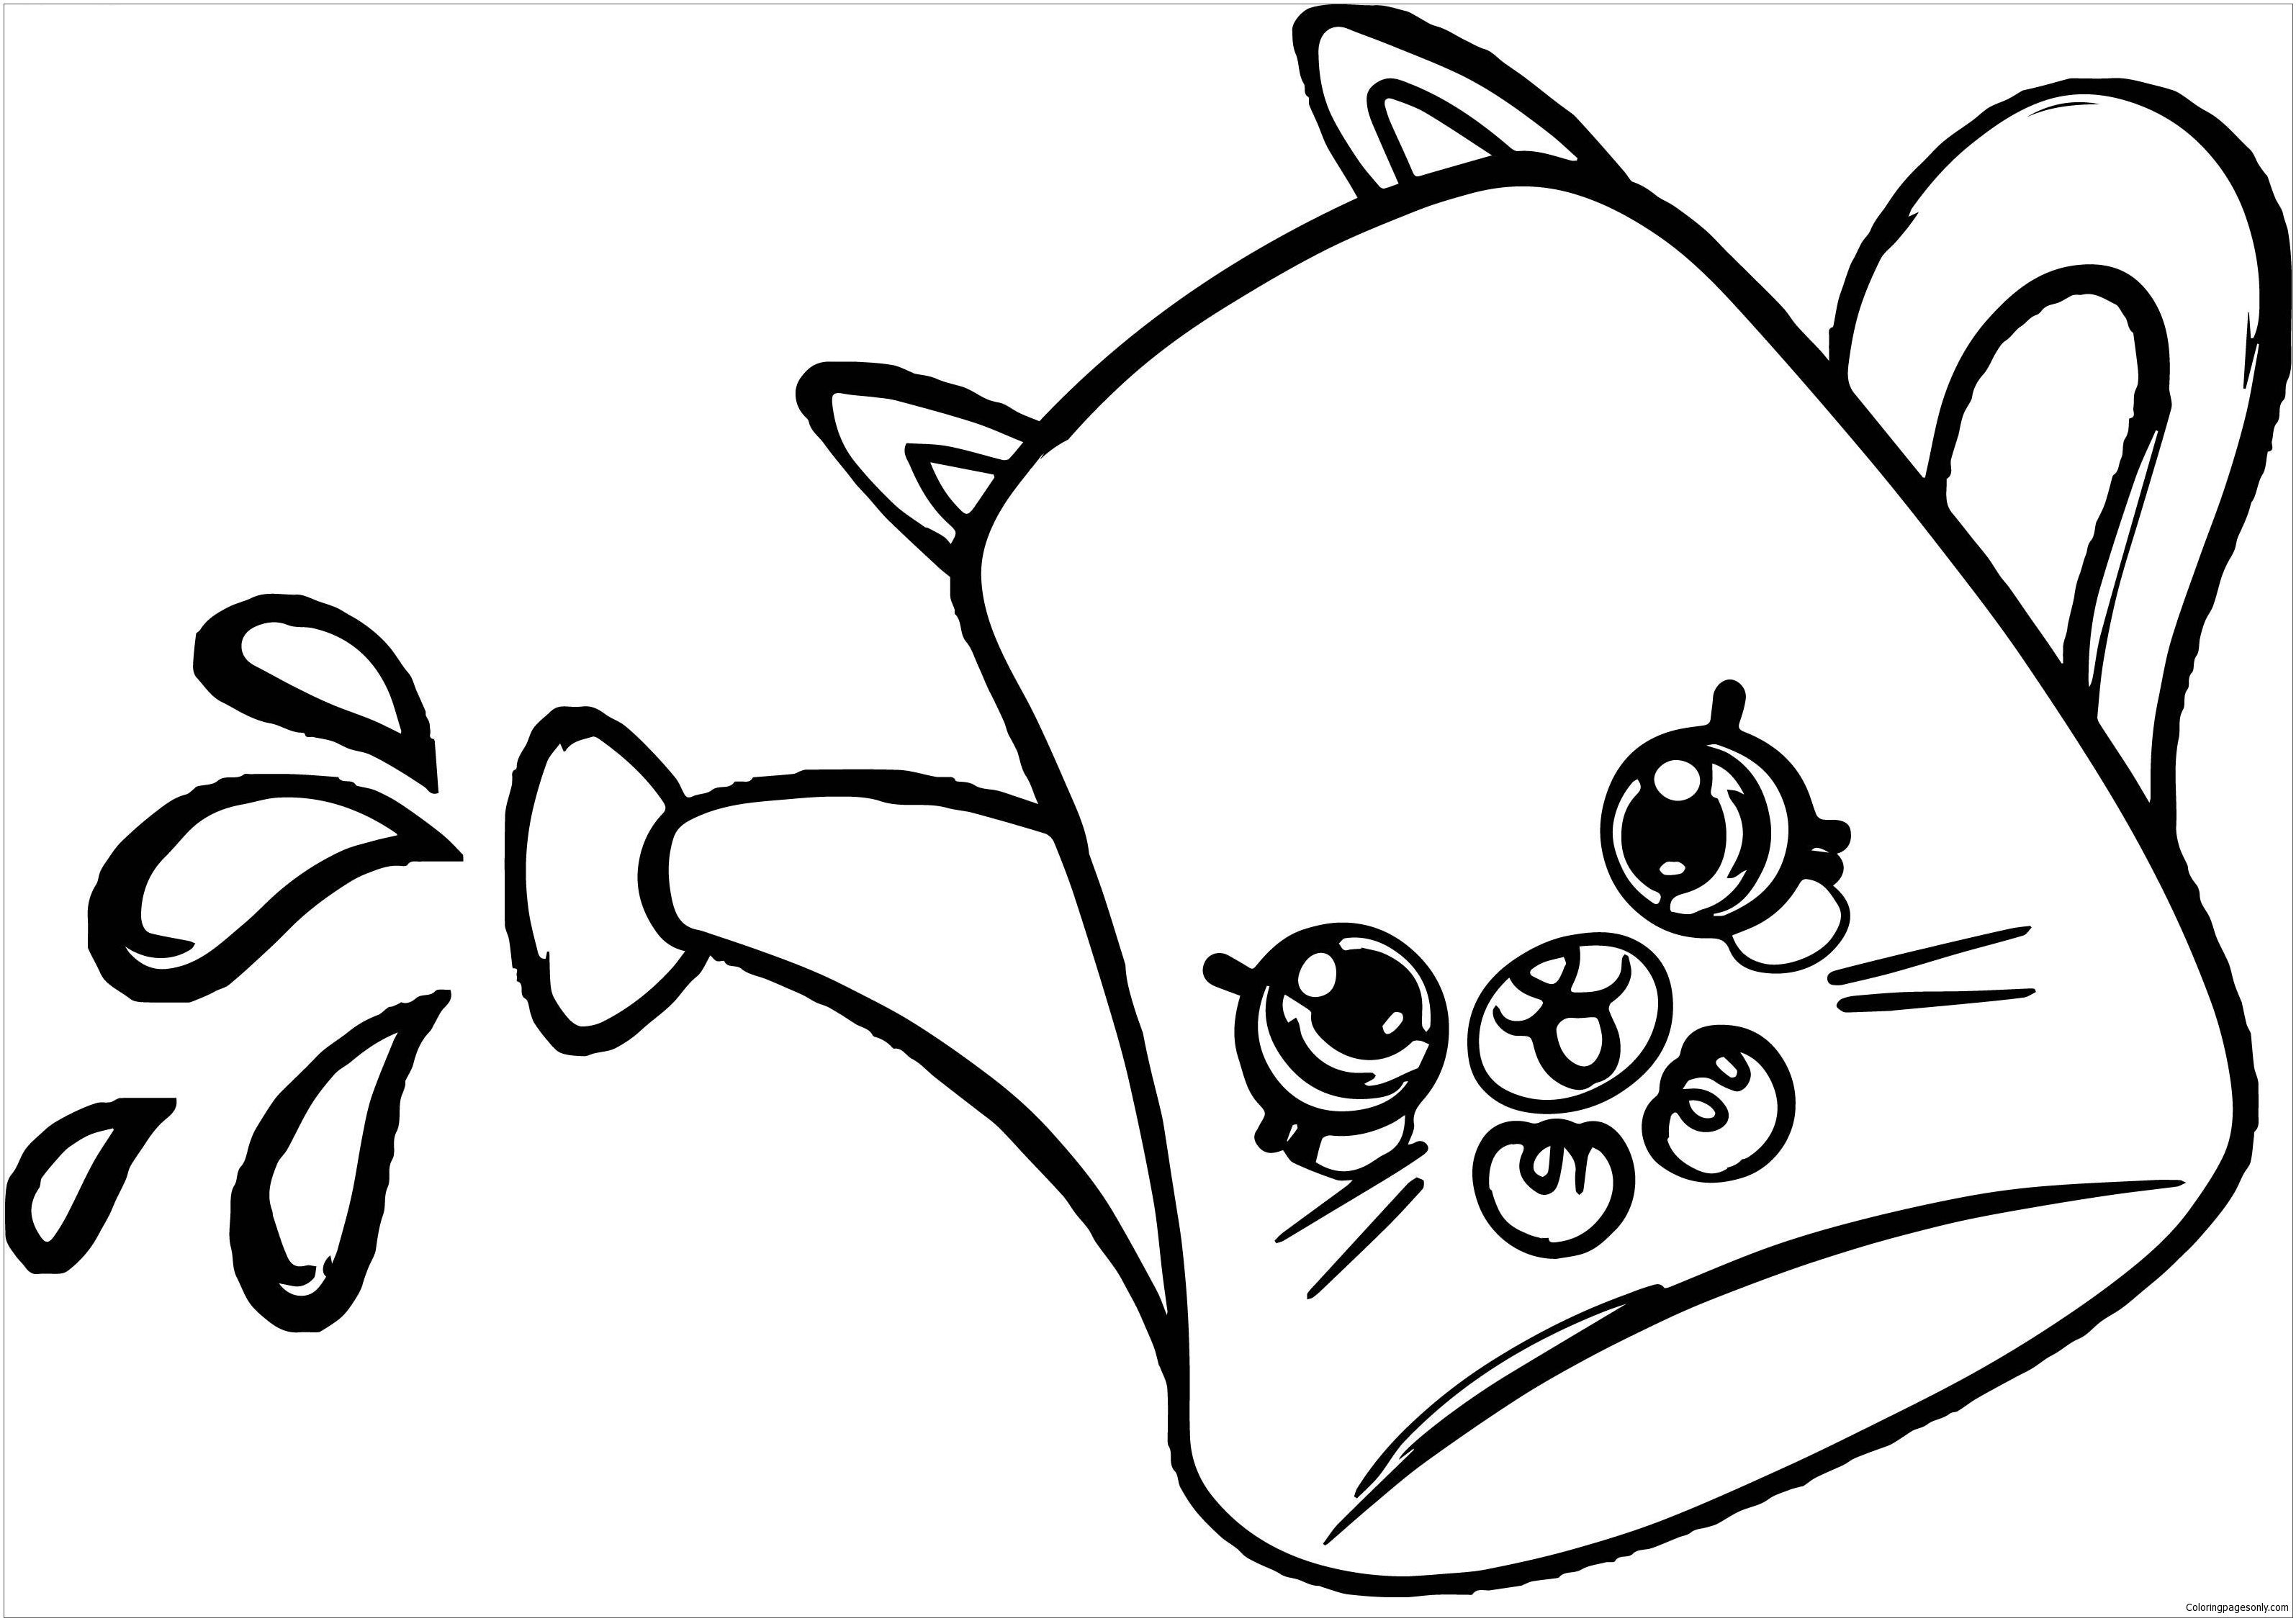 Drips From Shopkins Coloring Page Shopkins Colouring Pages